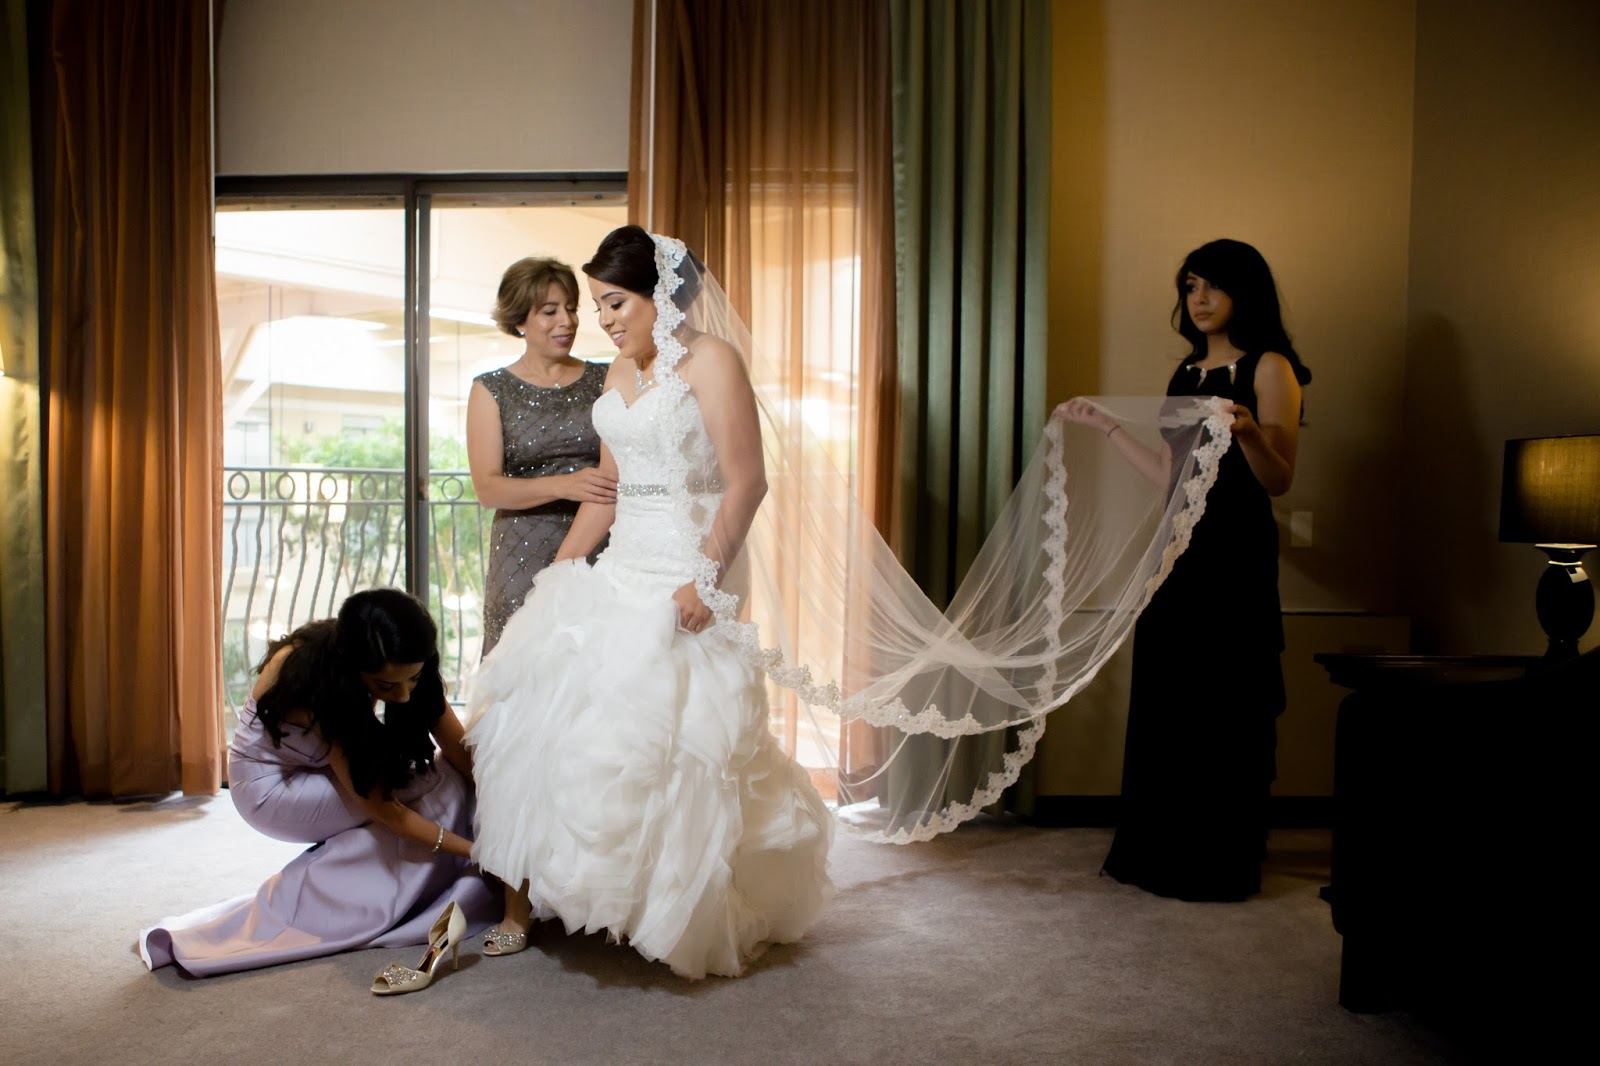 Helping the Bride with Finishing Touches